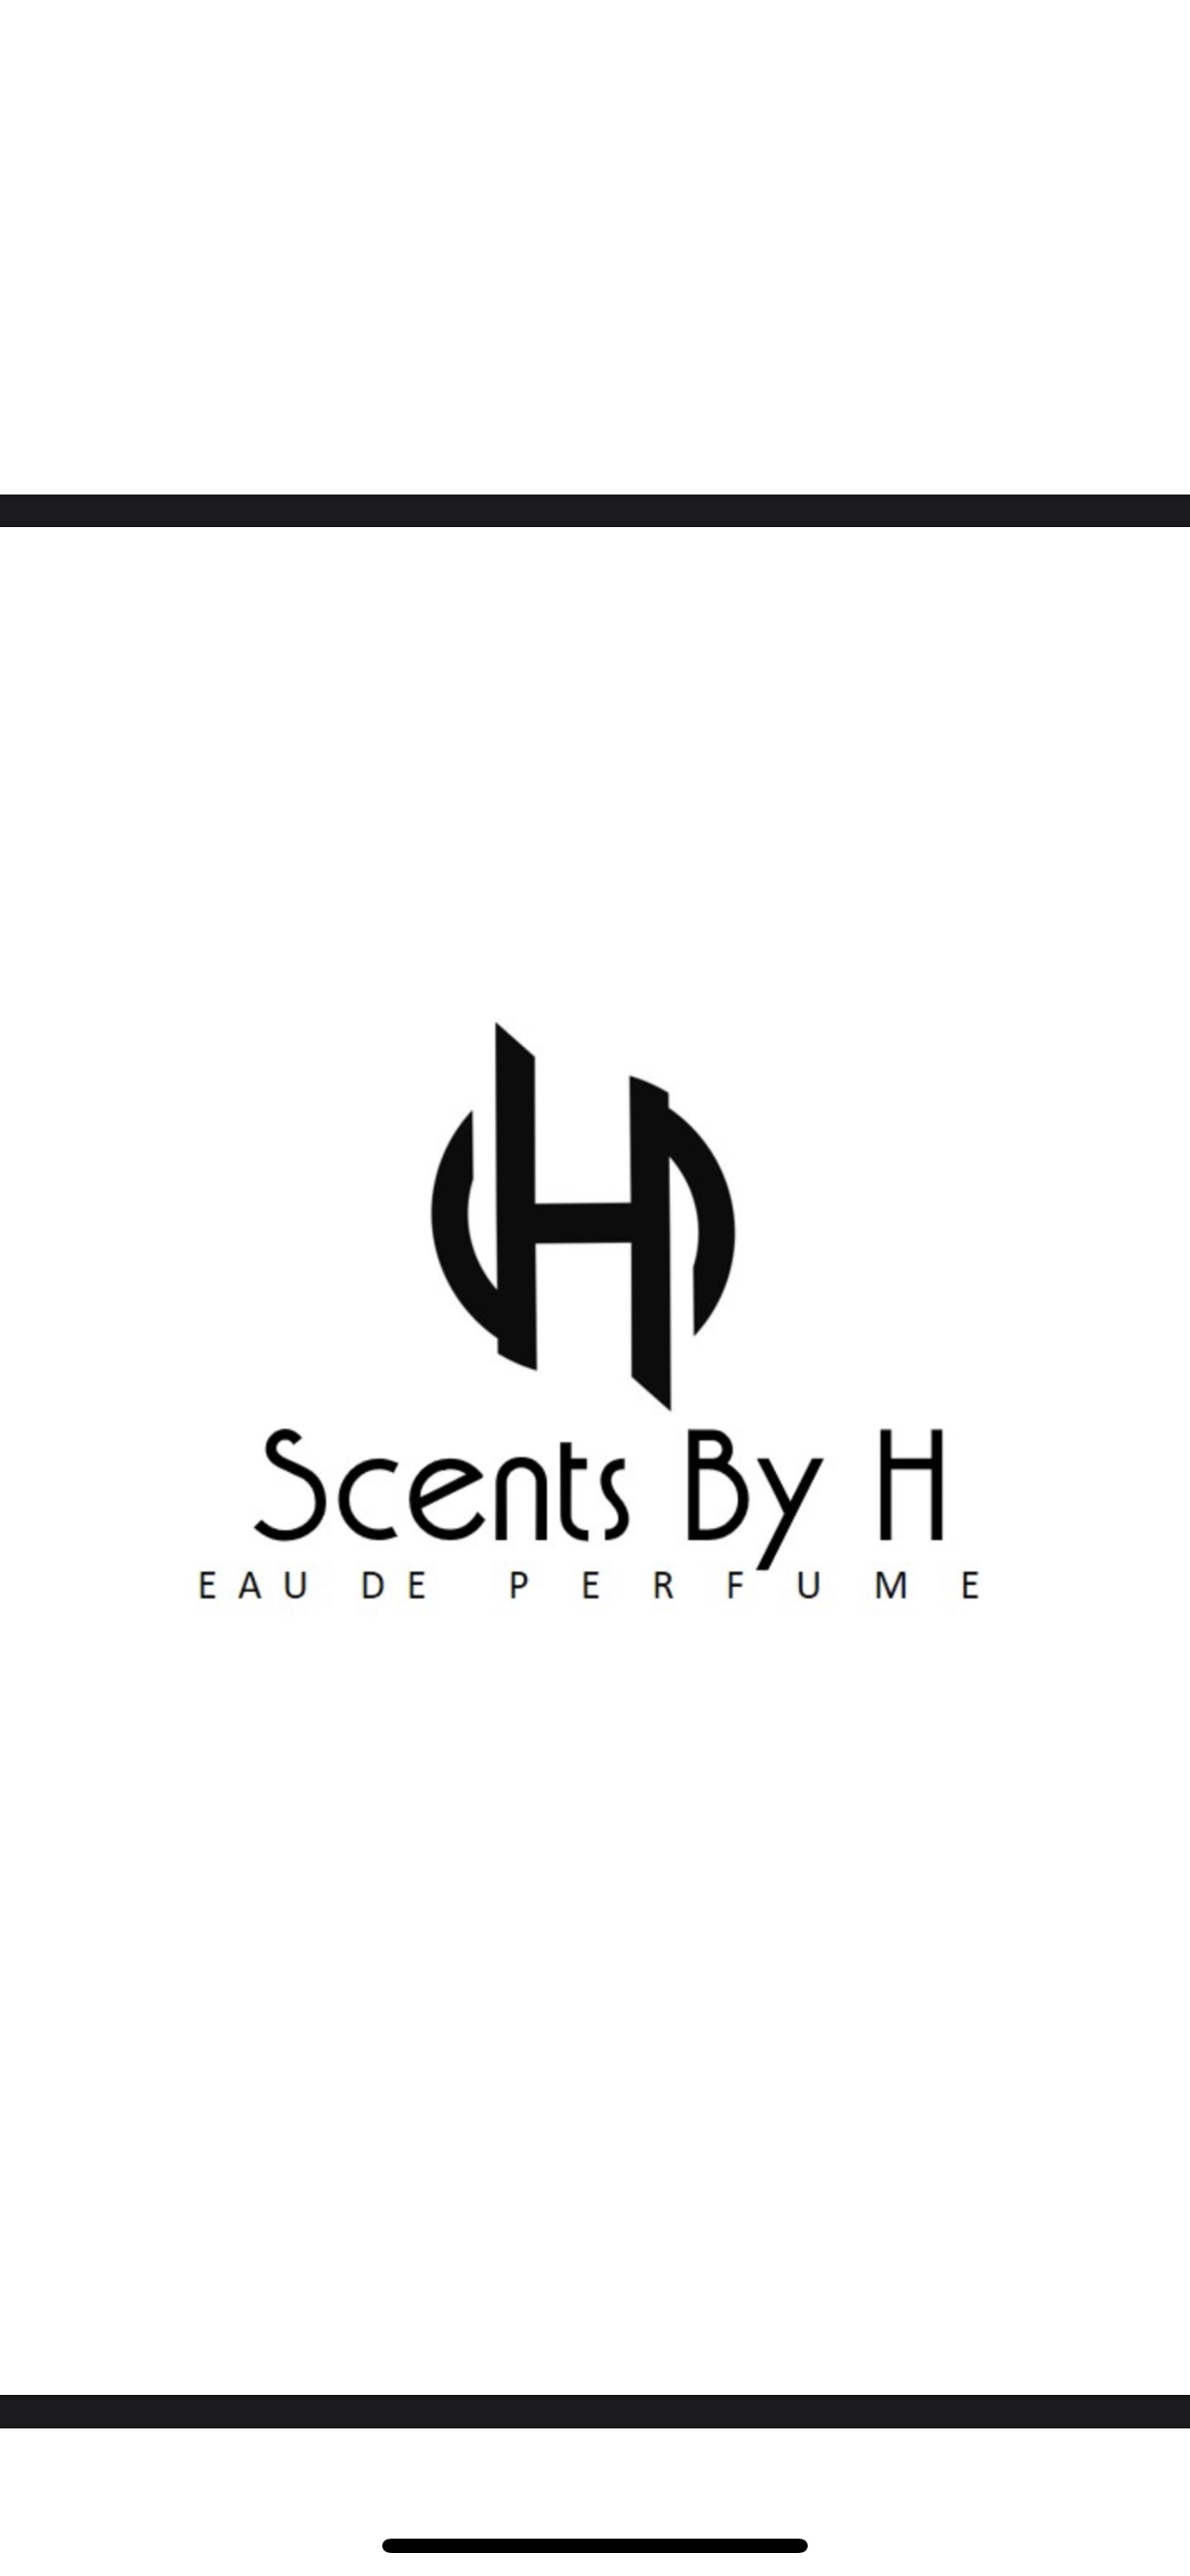 Scents by H